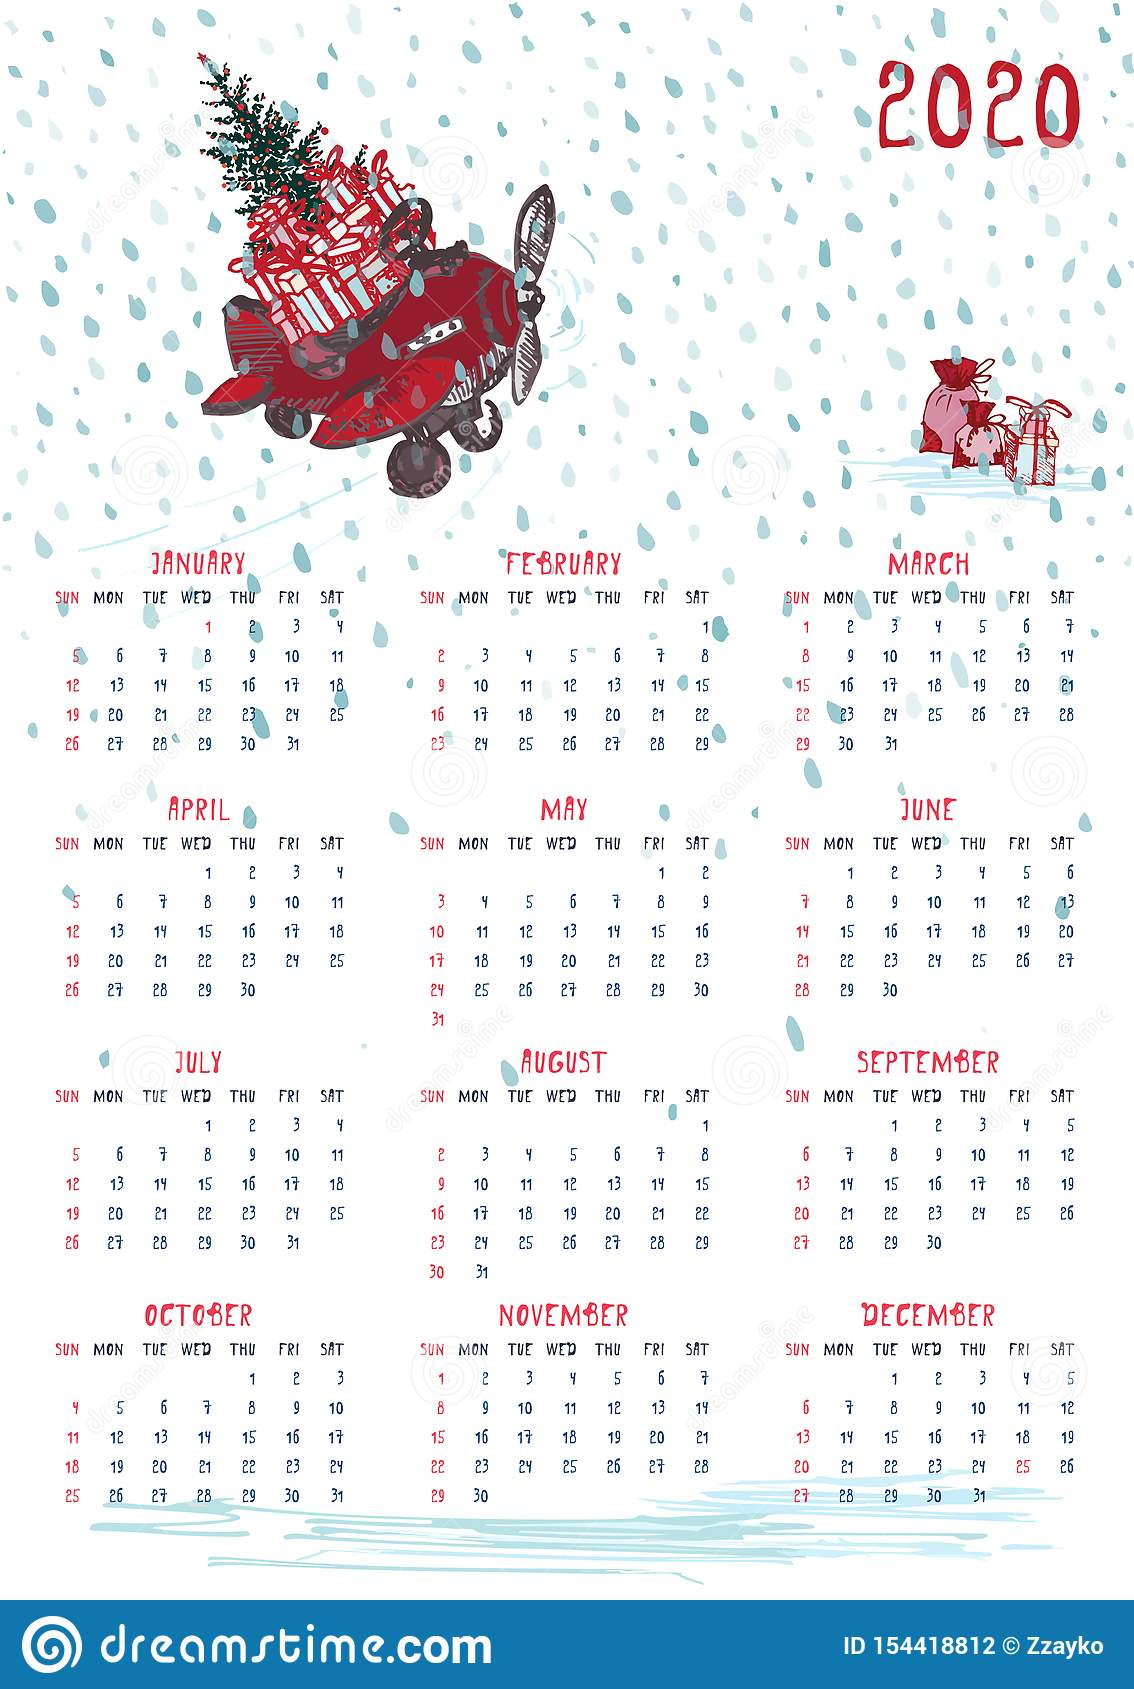 Christmas Calendar 2020 Template 2020 Calendar Planner Whith Red Christmas Truck, New Year Tree And